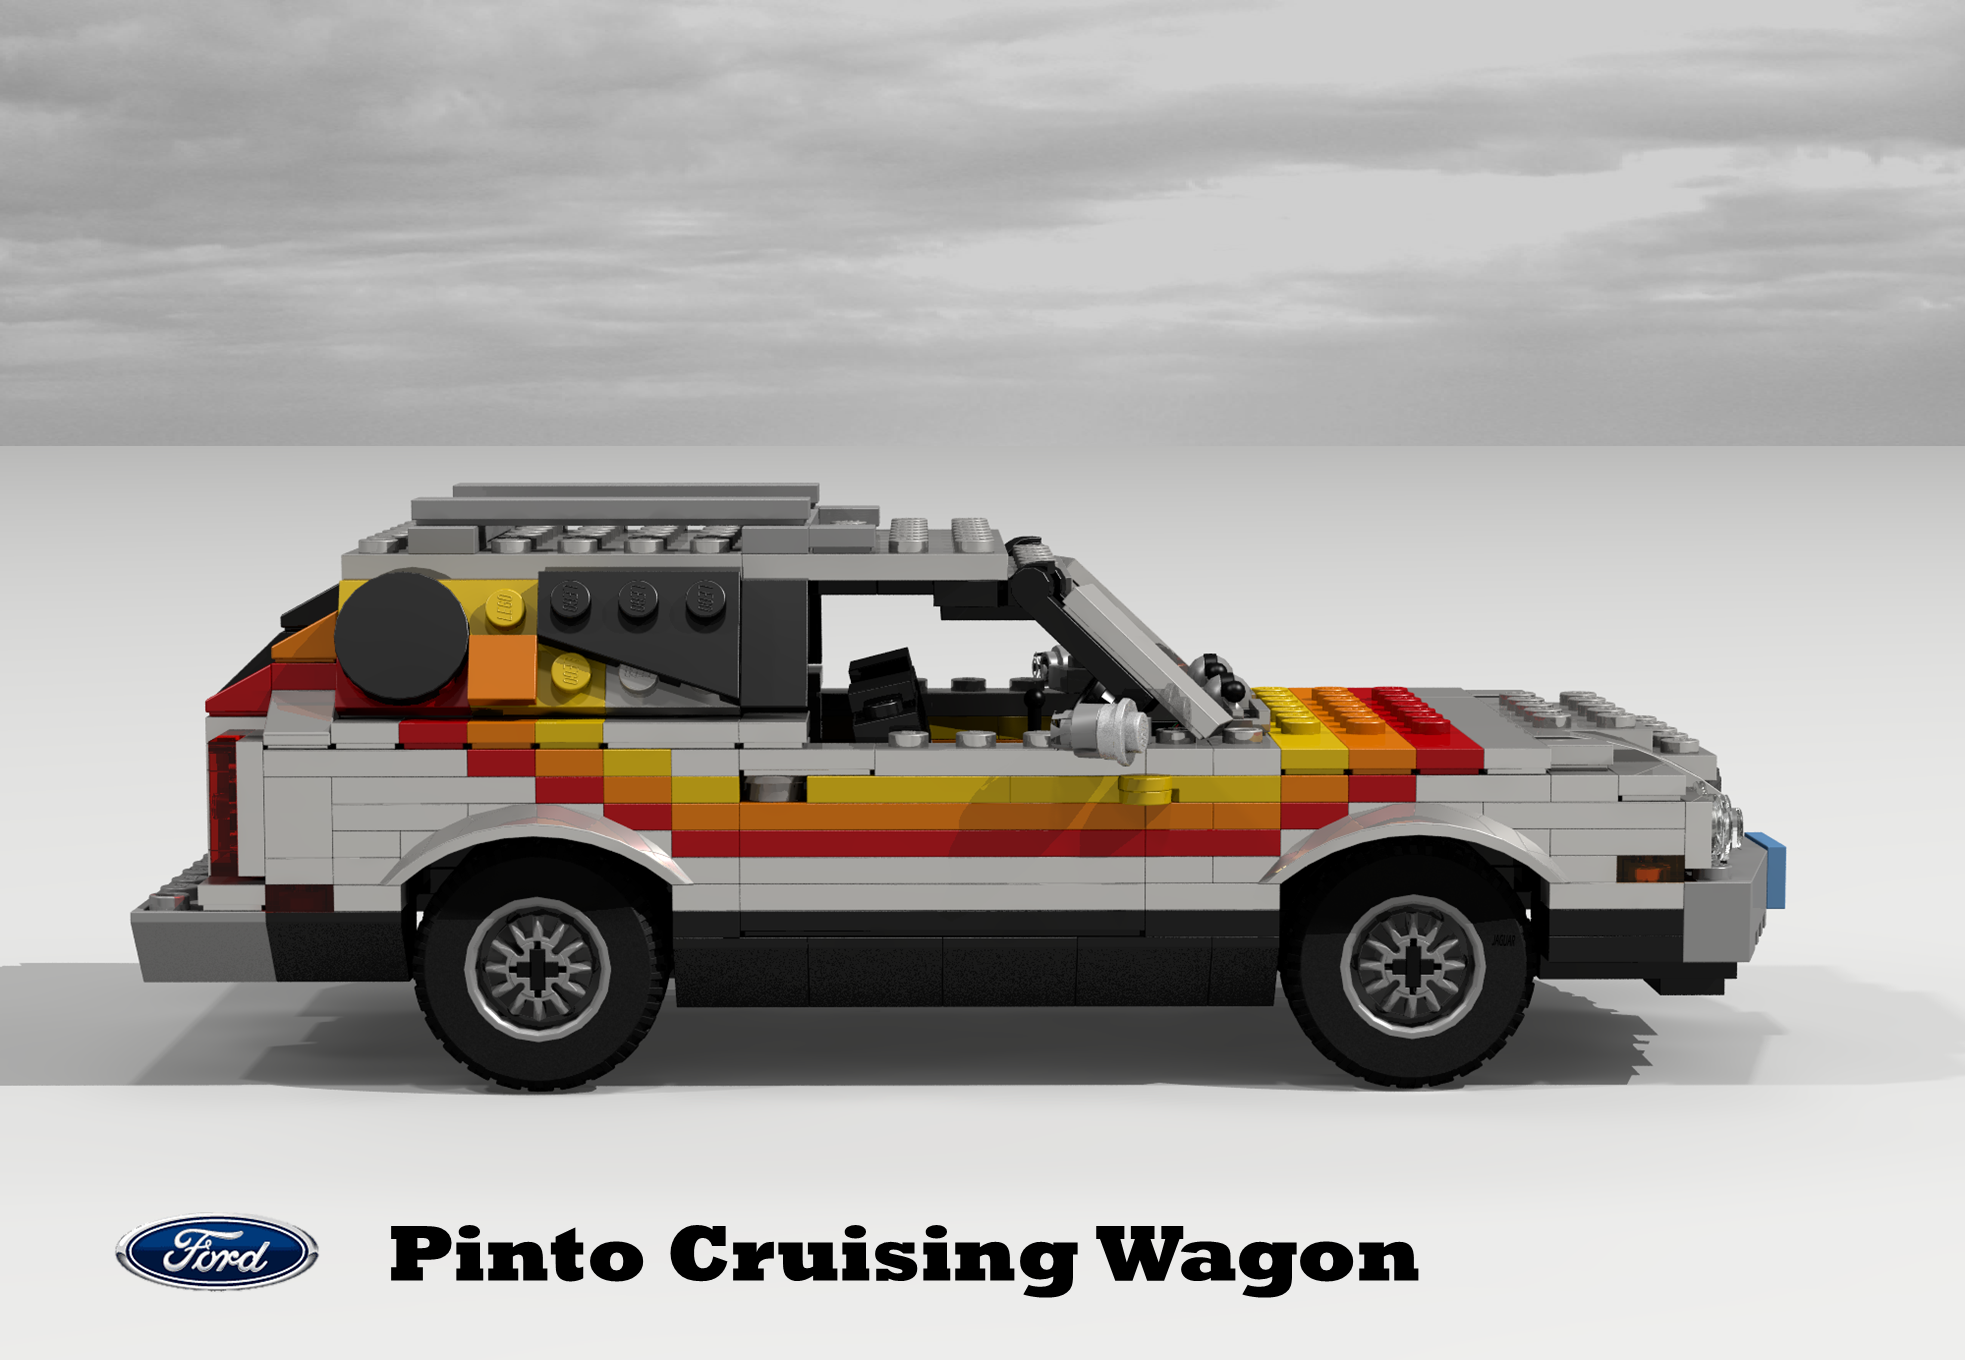 ford_pinto_cruising_wagon_04.png